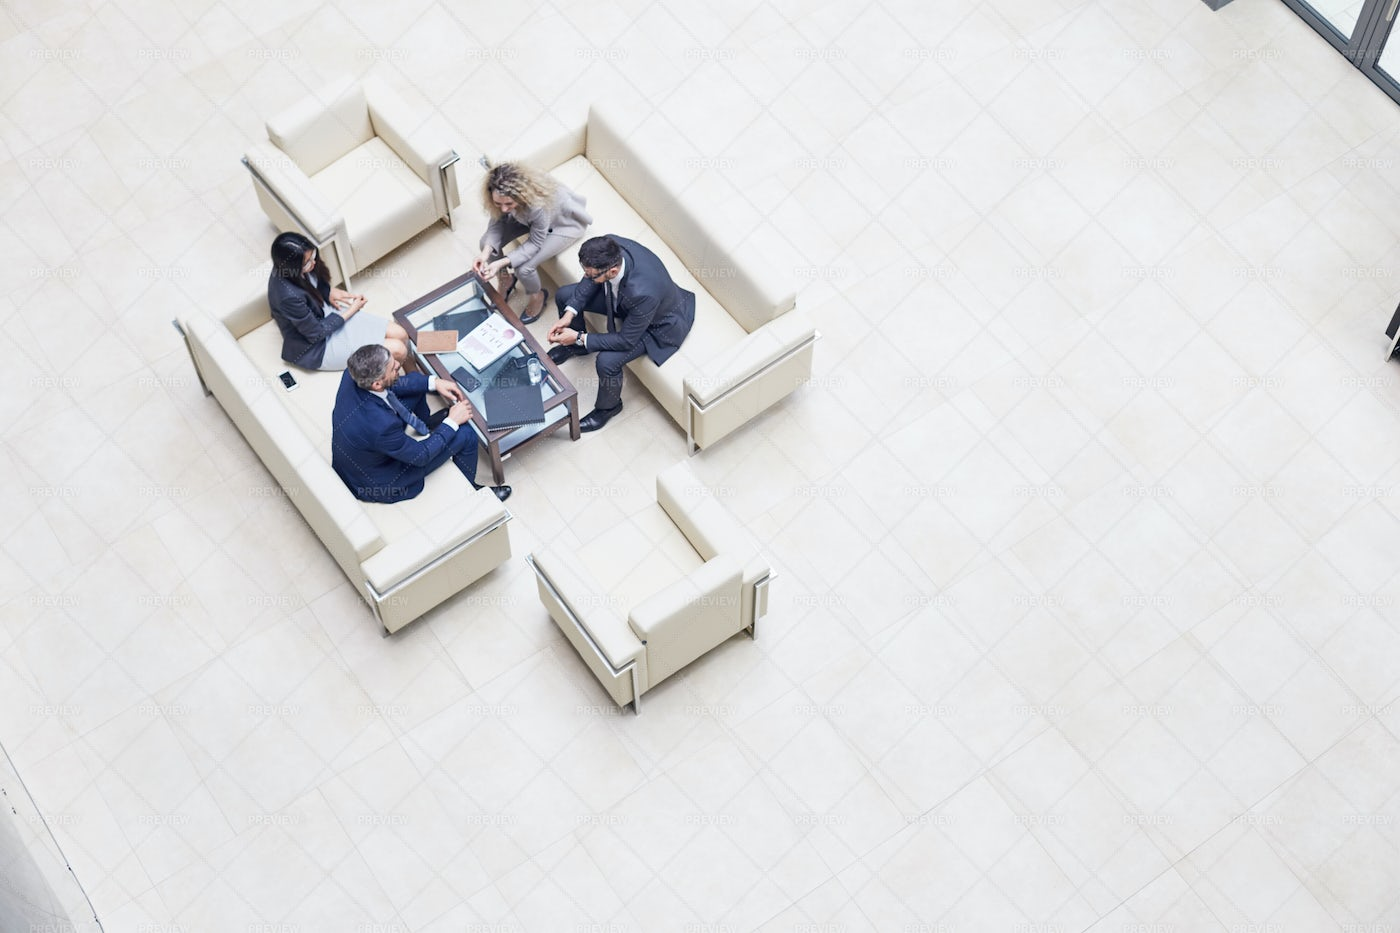 Working Meeting At Office Lobby: Stock Photos